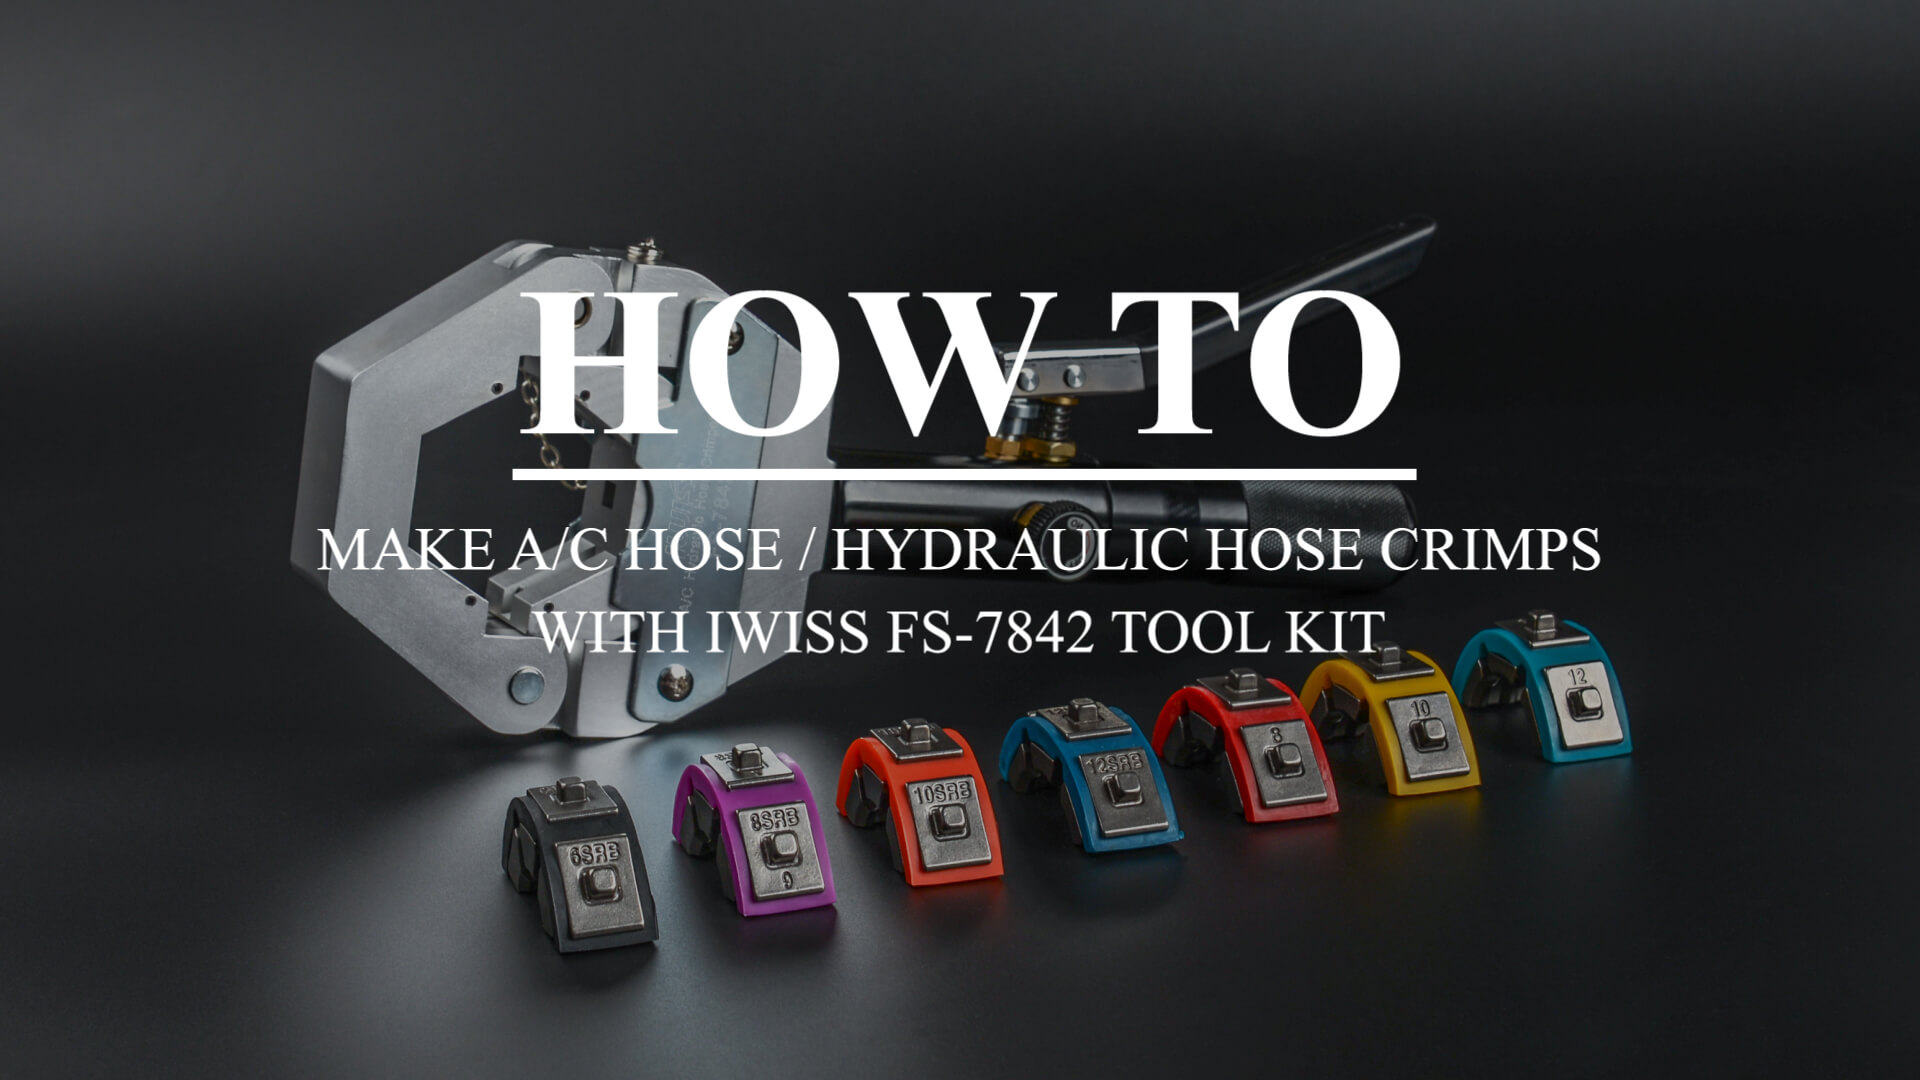 IWISS FS-7842 HYDRAULIC HOSE AIR CONDITIONING HOSE CRIMPING TOOL